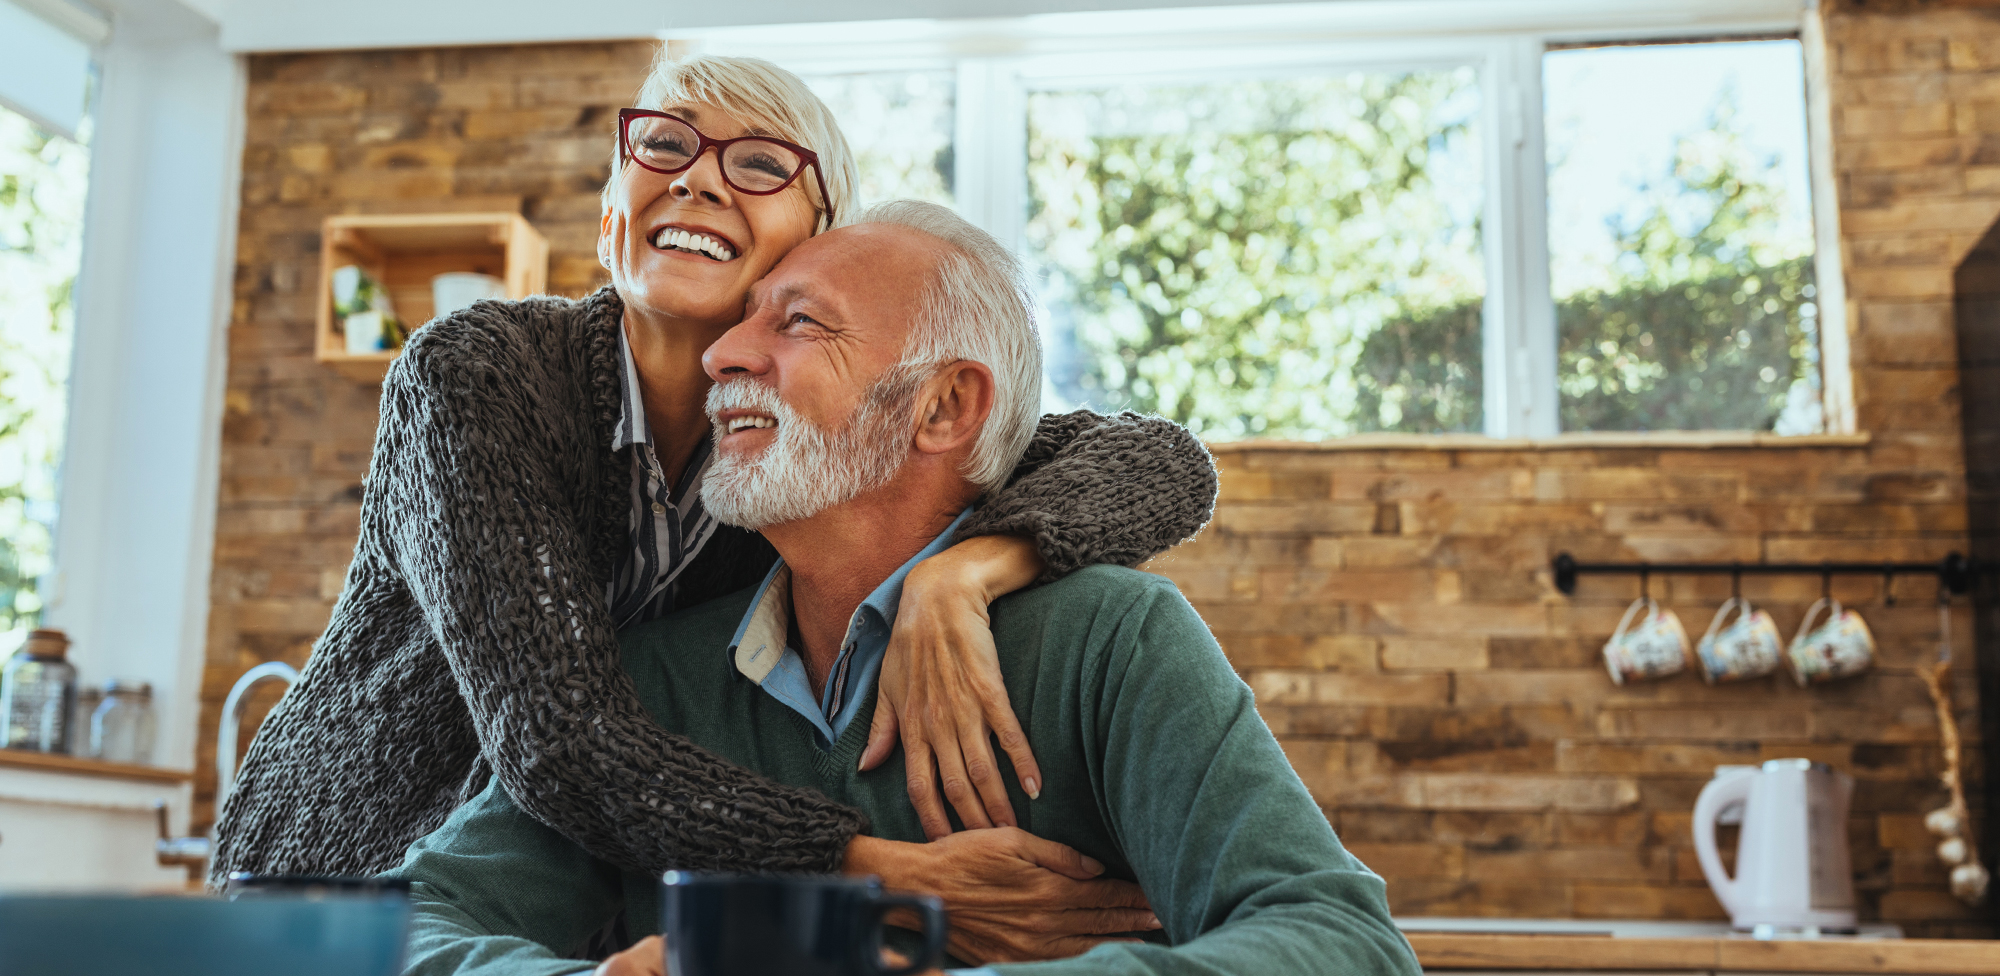 an older man is sitting while an older woman is hugging him, both smiling